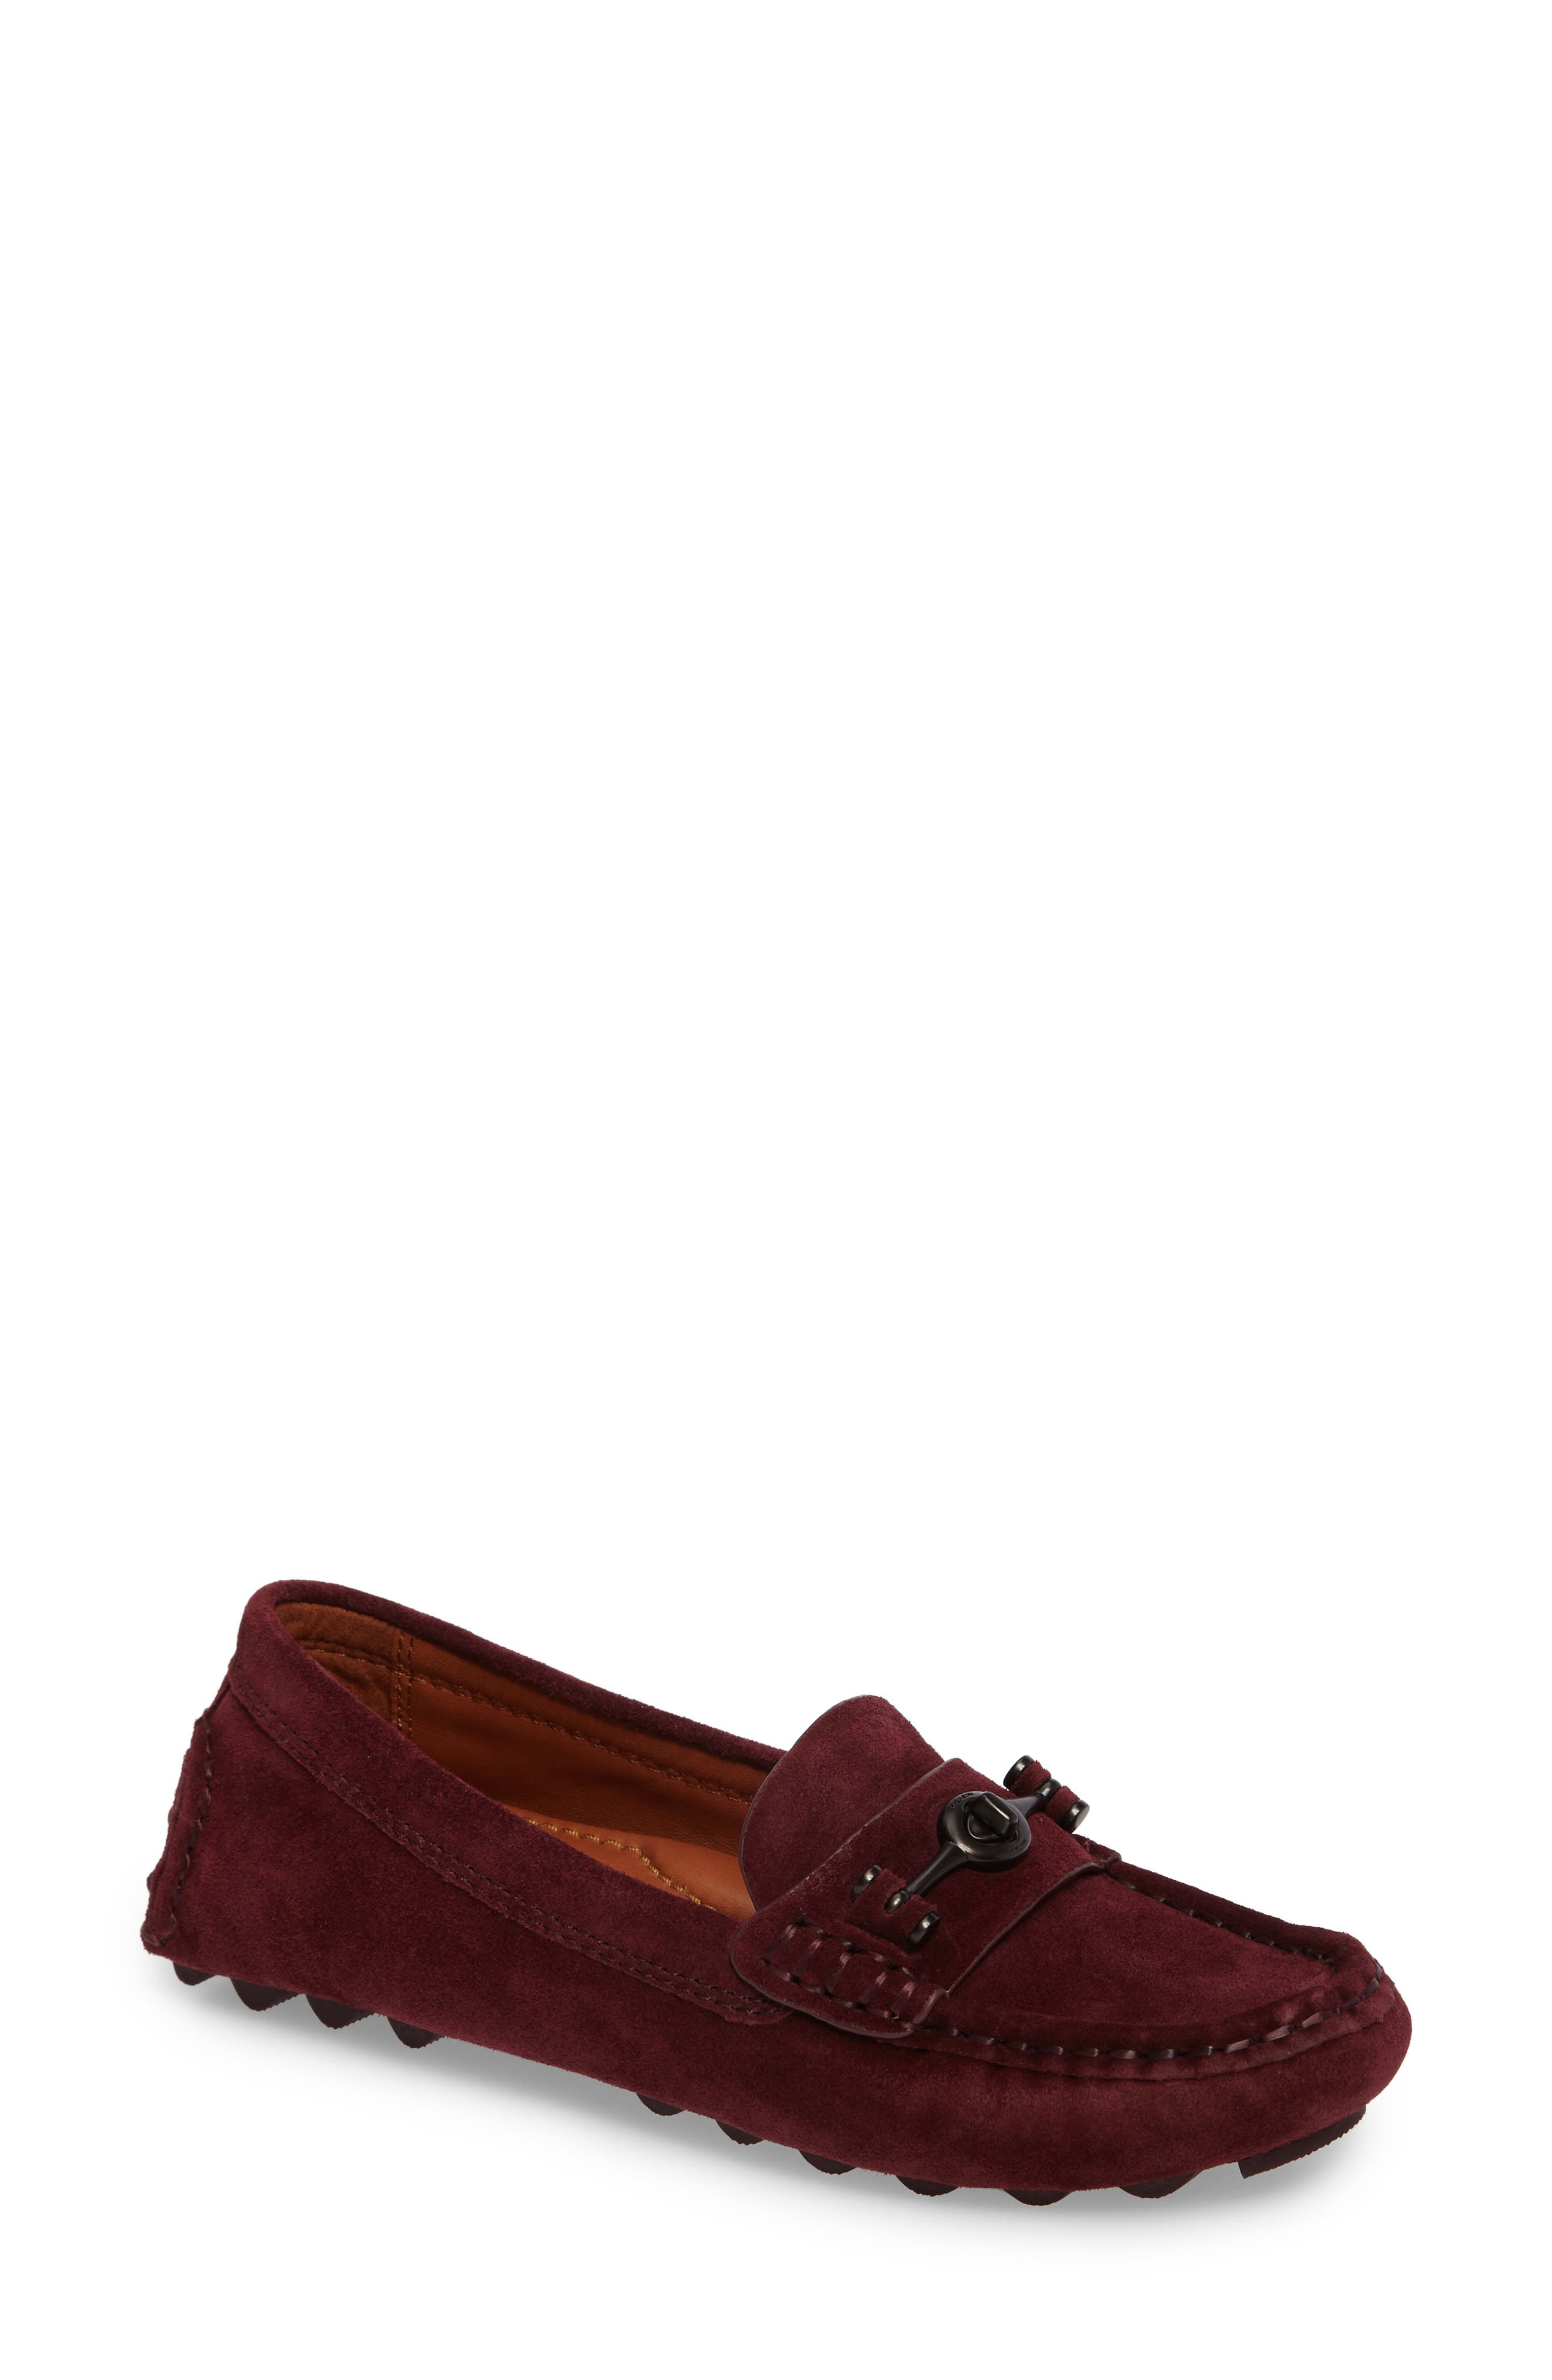 Main Image - Coach Crosby Driving Loafer (Women)